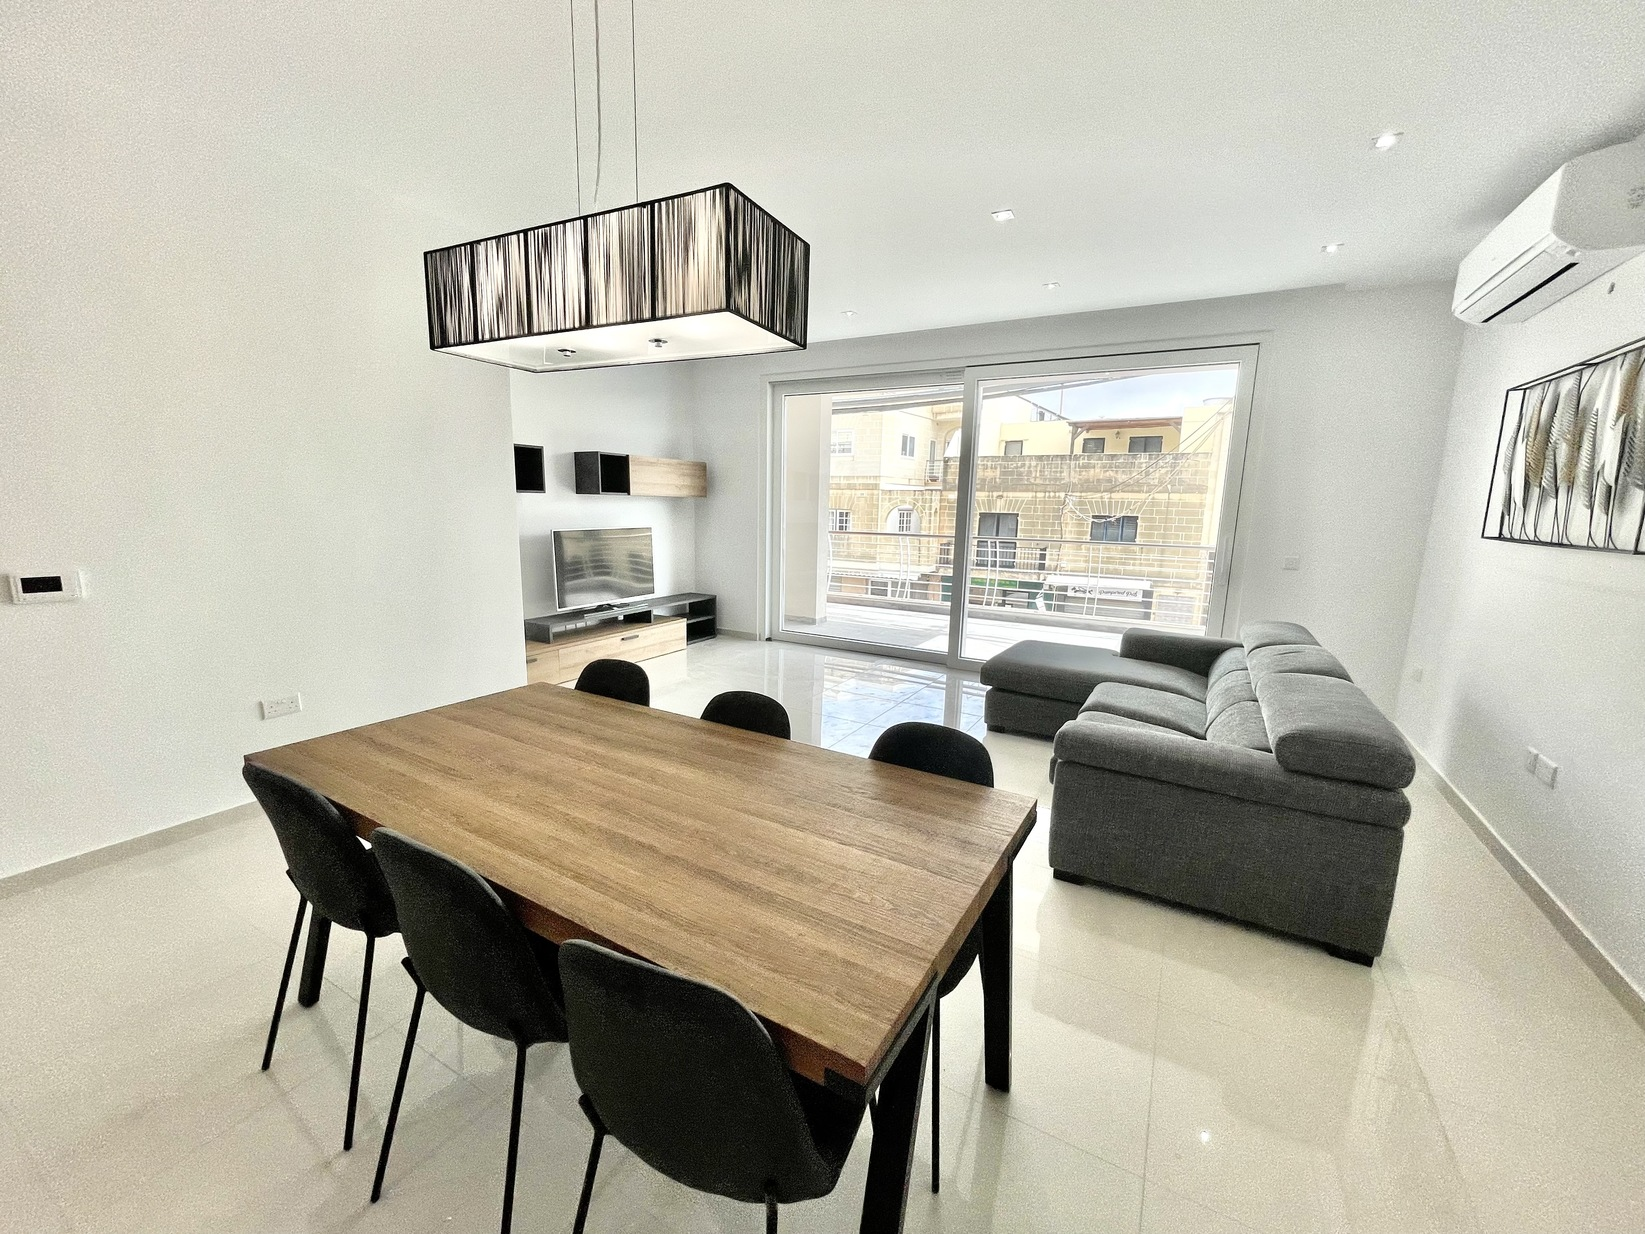 3 bed Apartment For Rent in Attard, Attard - thumb 7